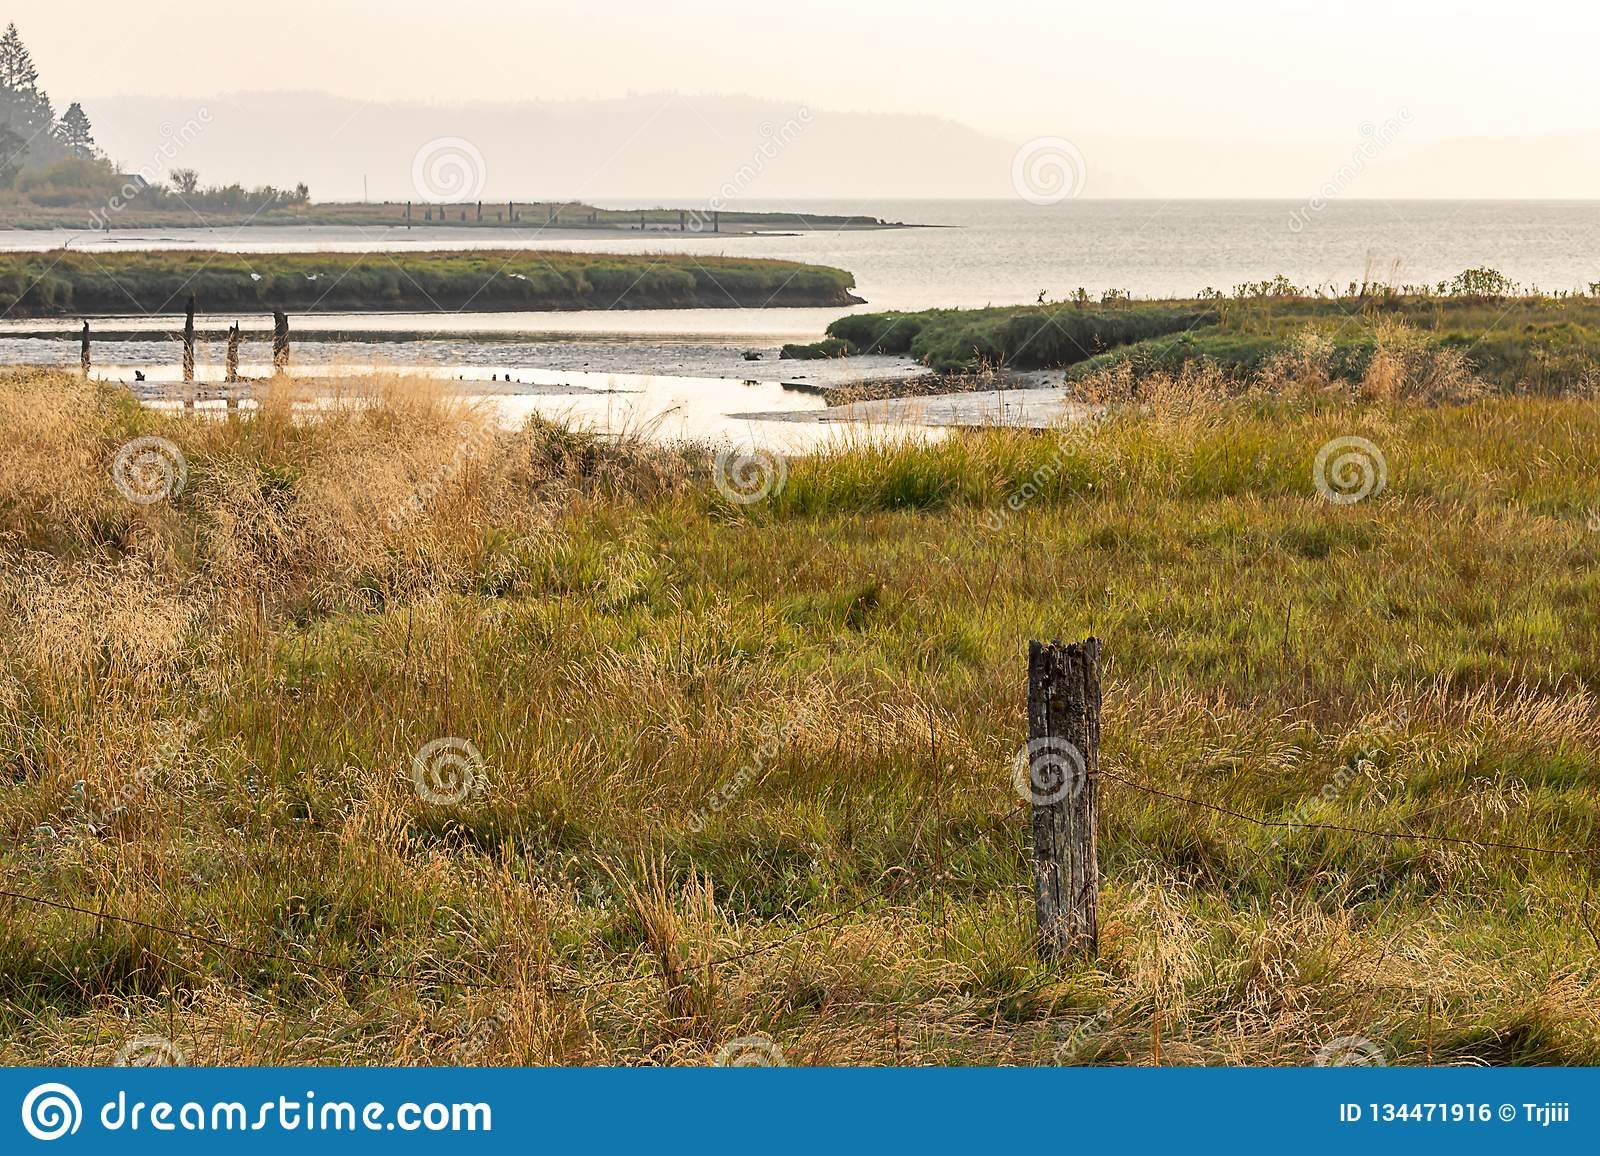 wetlands along the coastline of hood canal